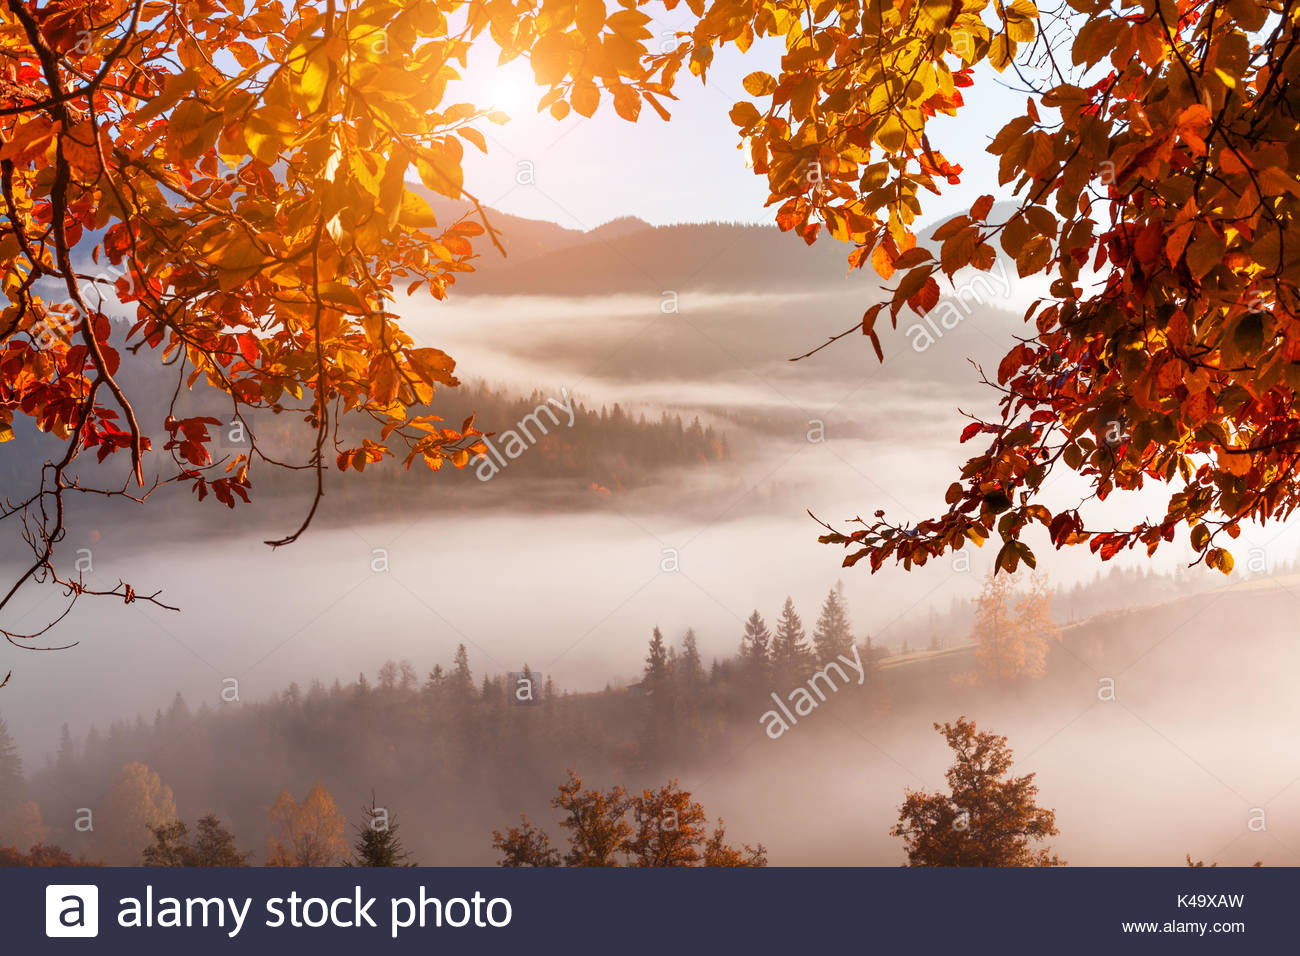 Foggy dawn in the autumn in the mountains - Stock Image